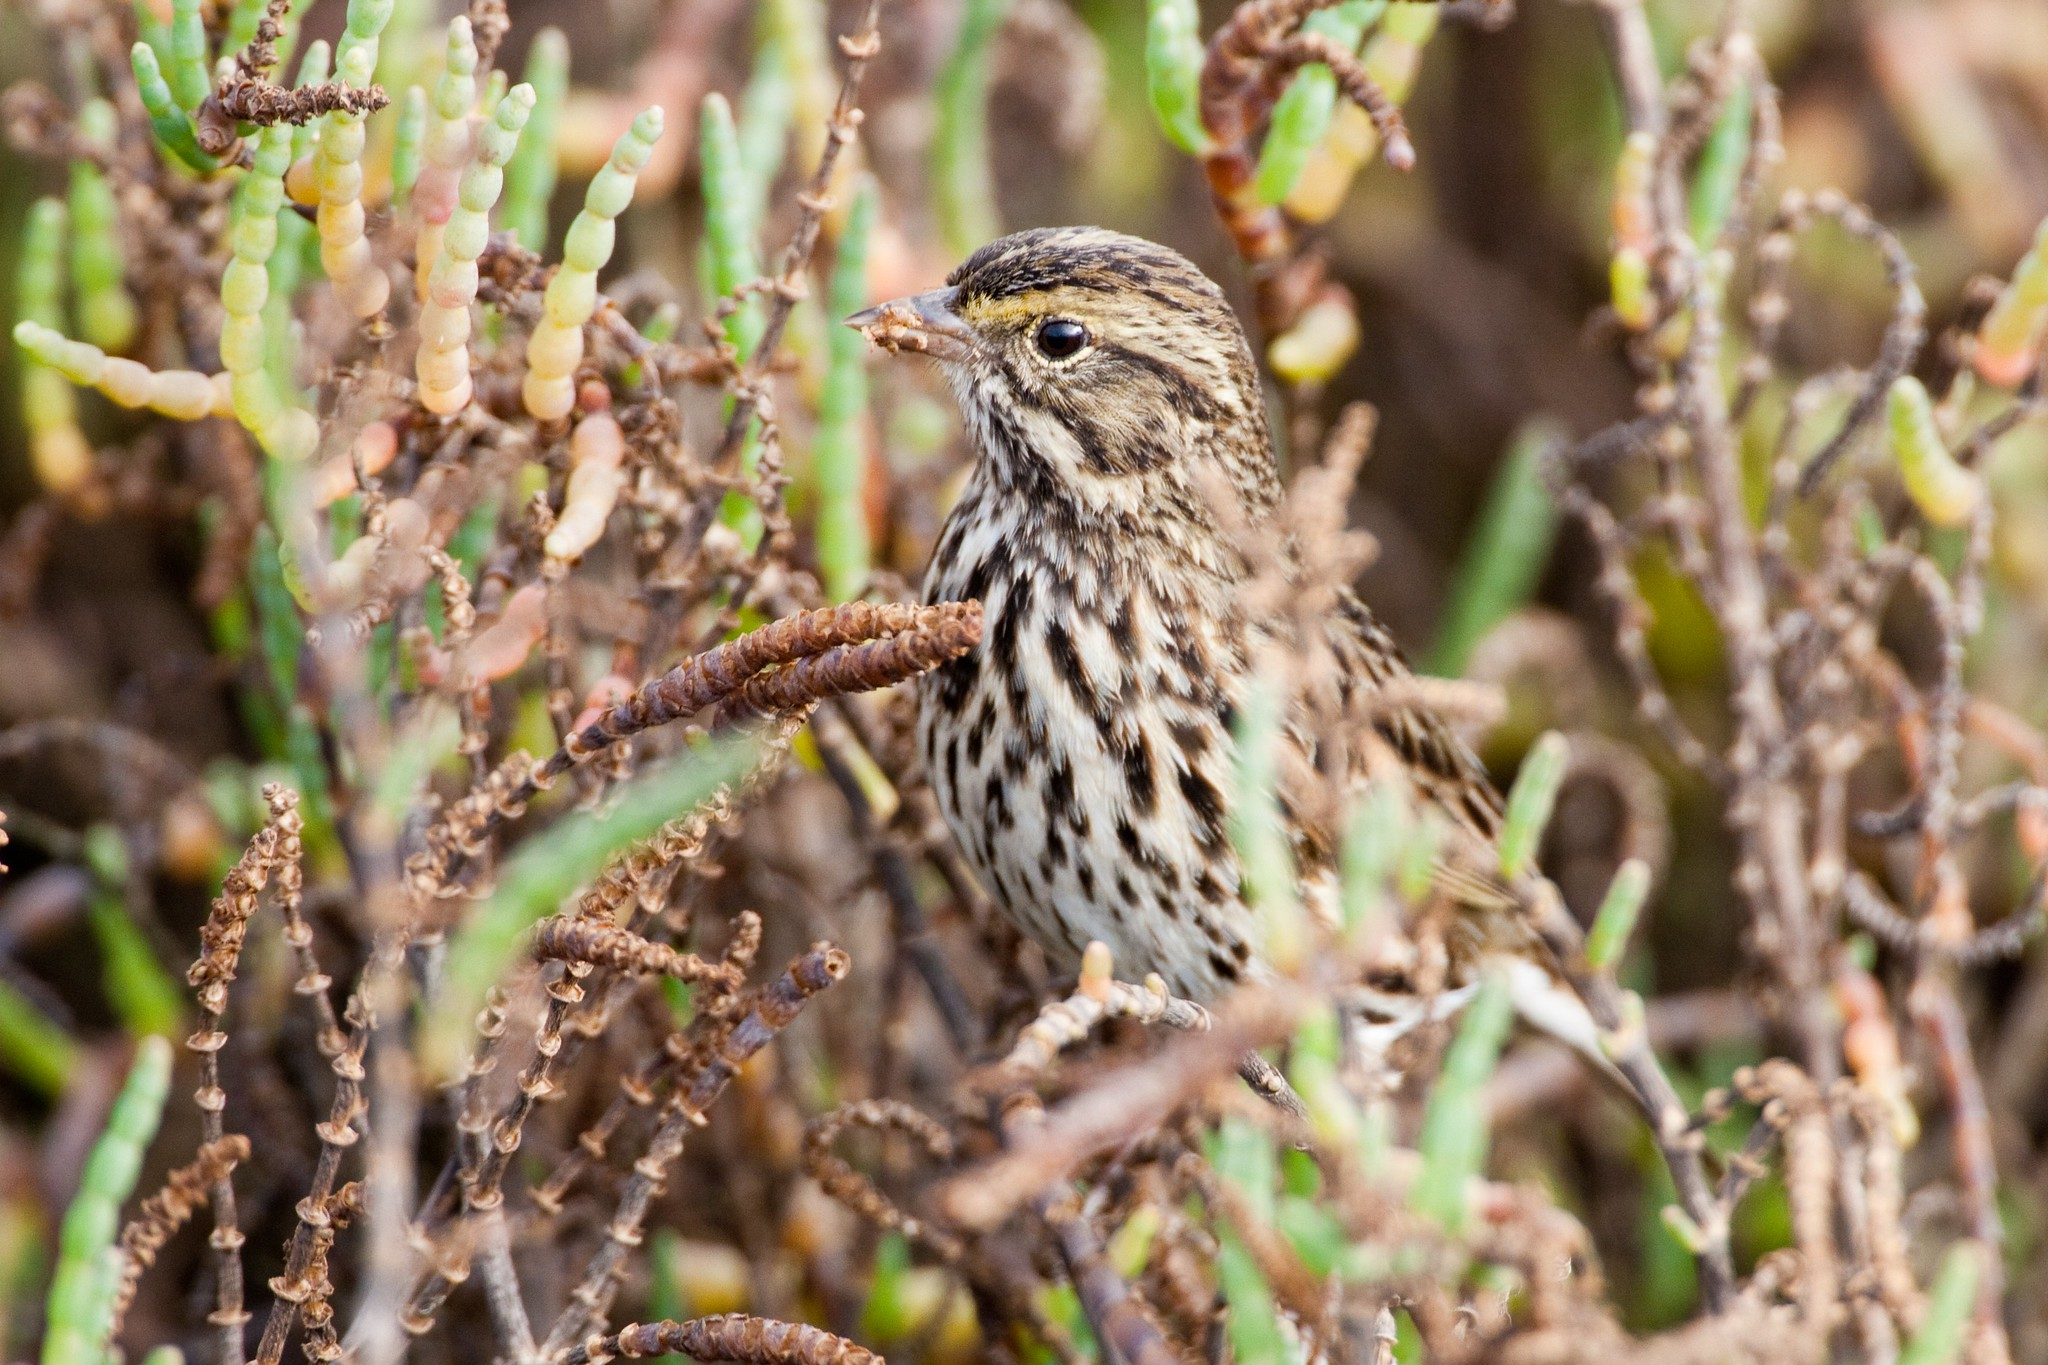 Belding's Savannah sparrow (adult)